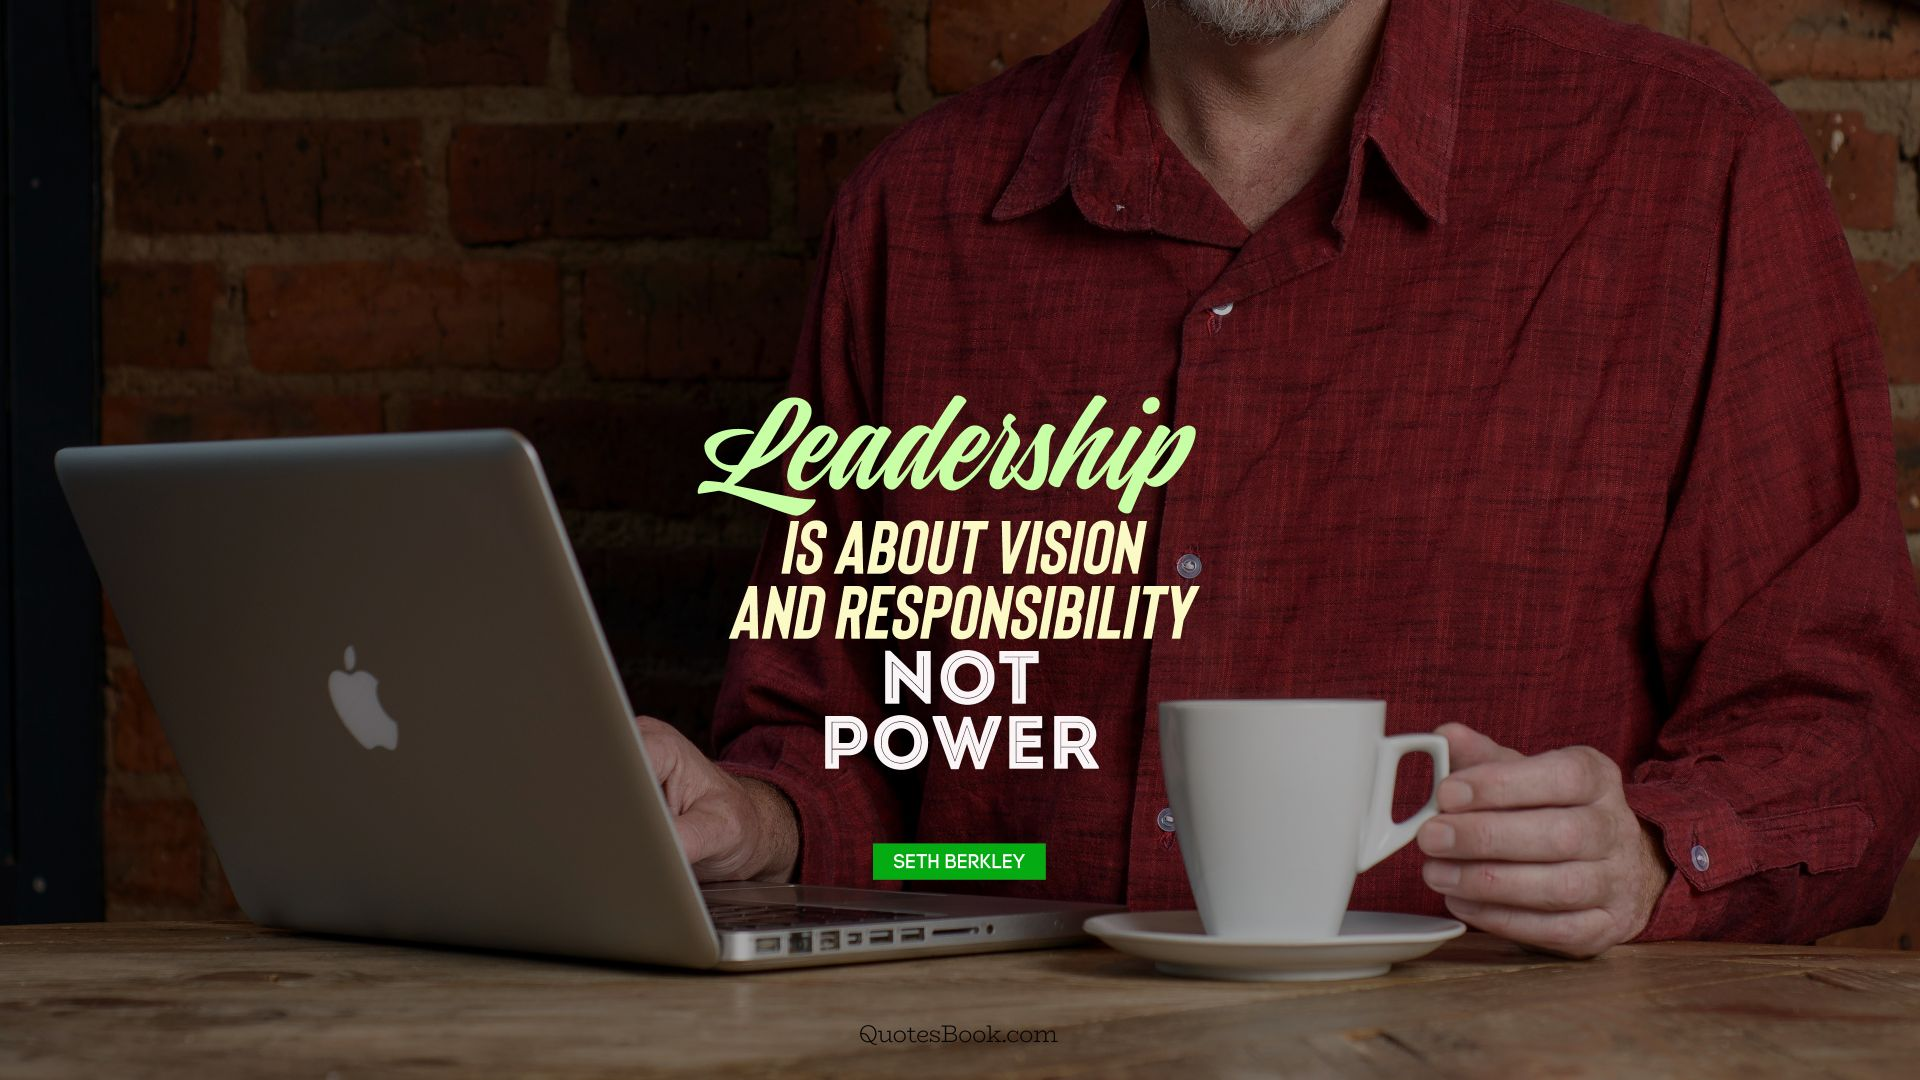 leadership is about vision and responsibility not power. - Quote by Seth Berkley